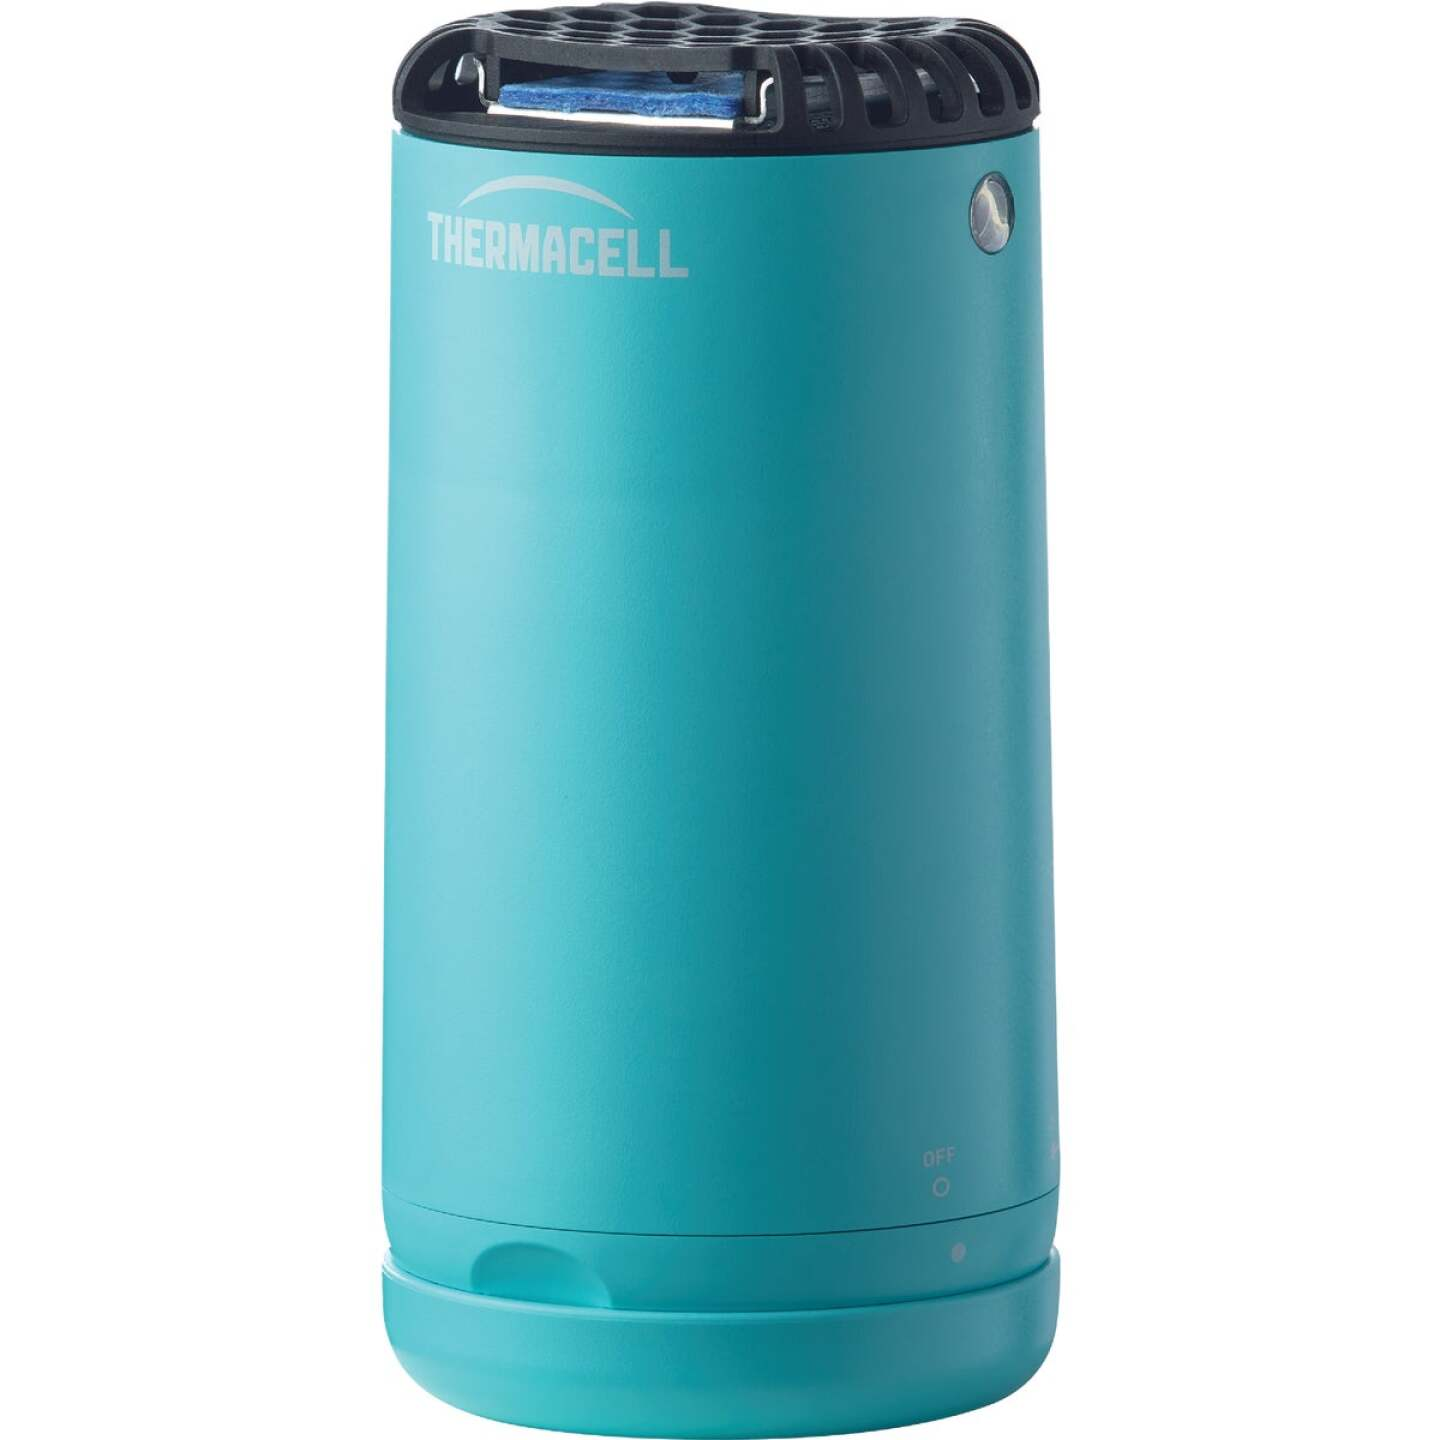 Thermacell Patio Shield 12 Hr. Glacial Blue Mosquito Repeller Image 1